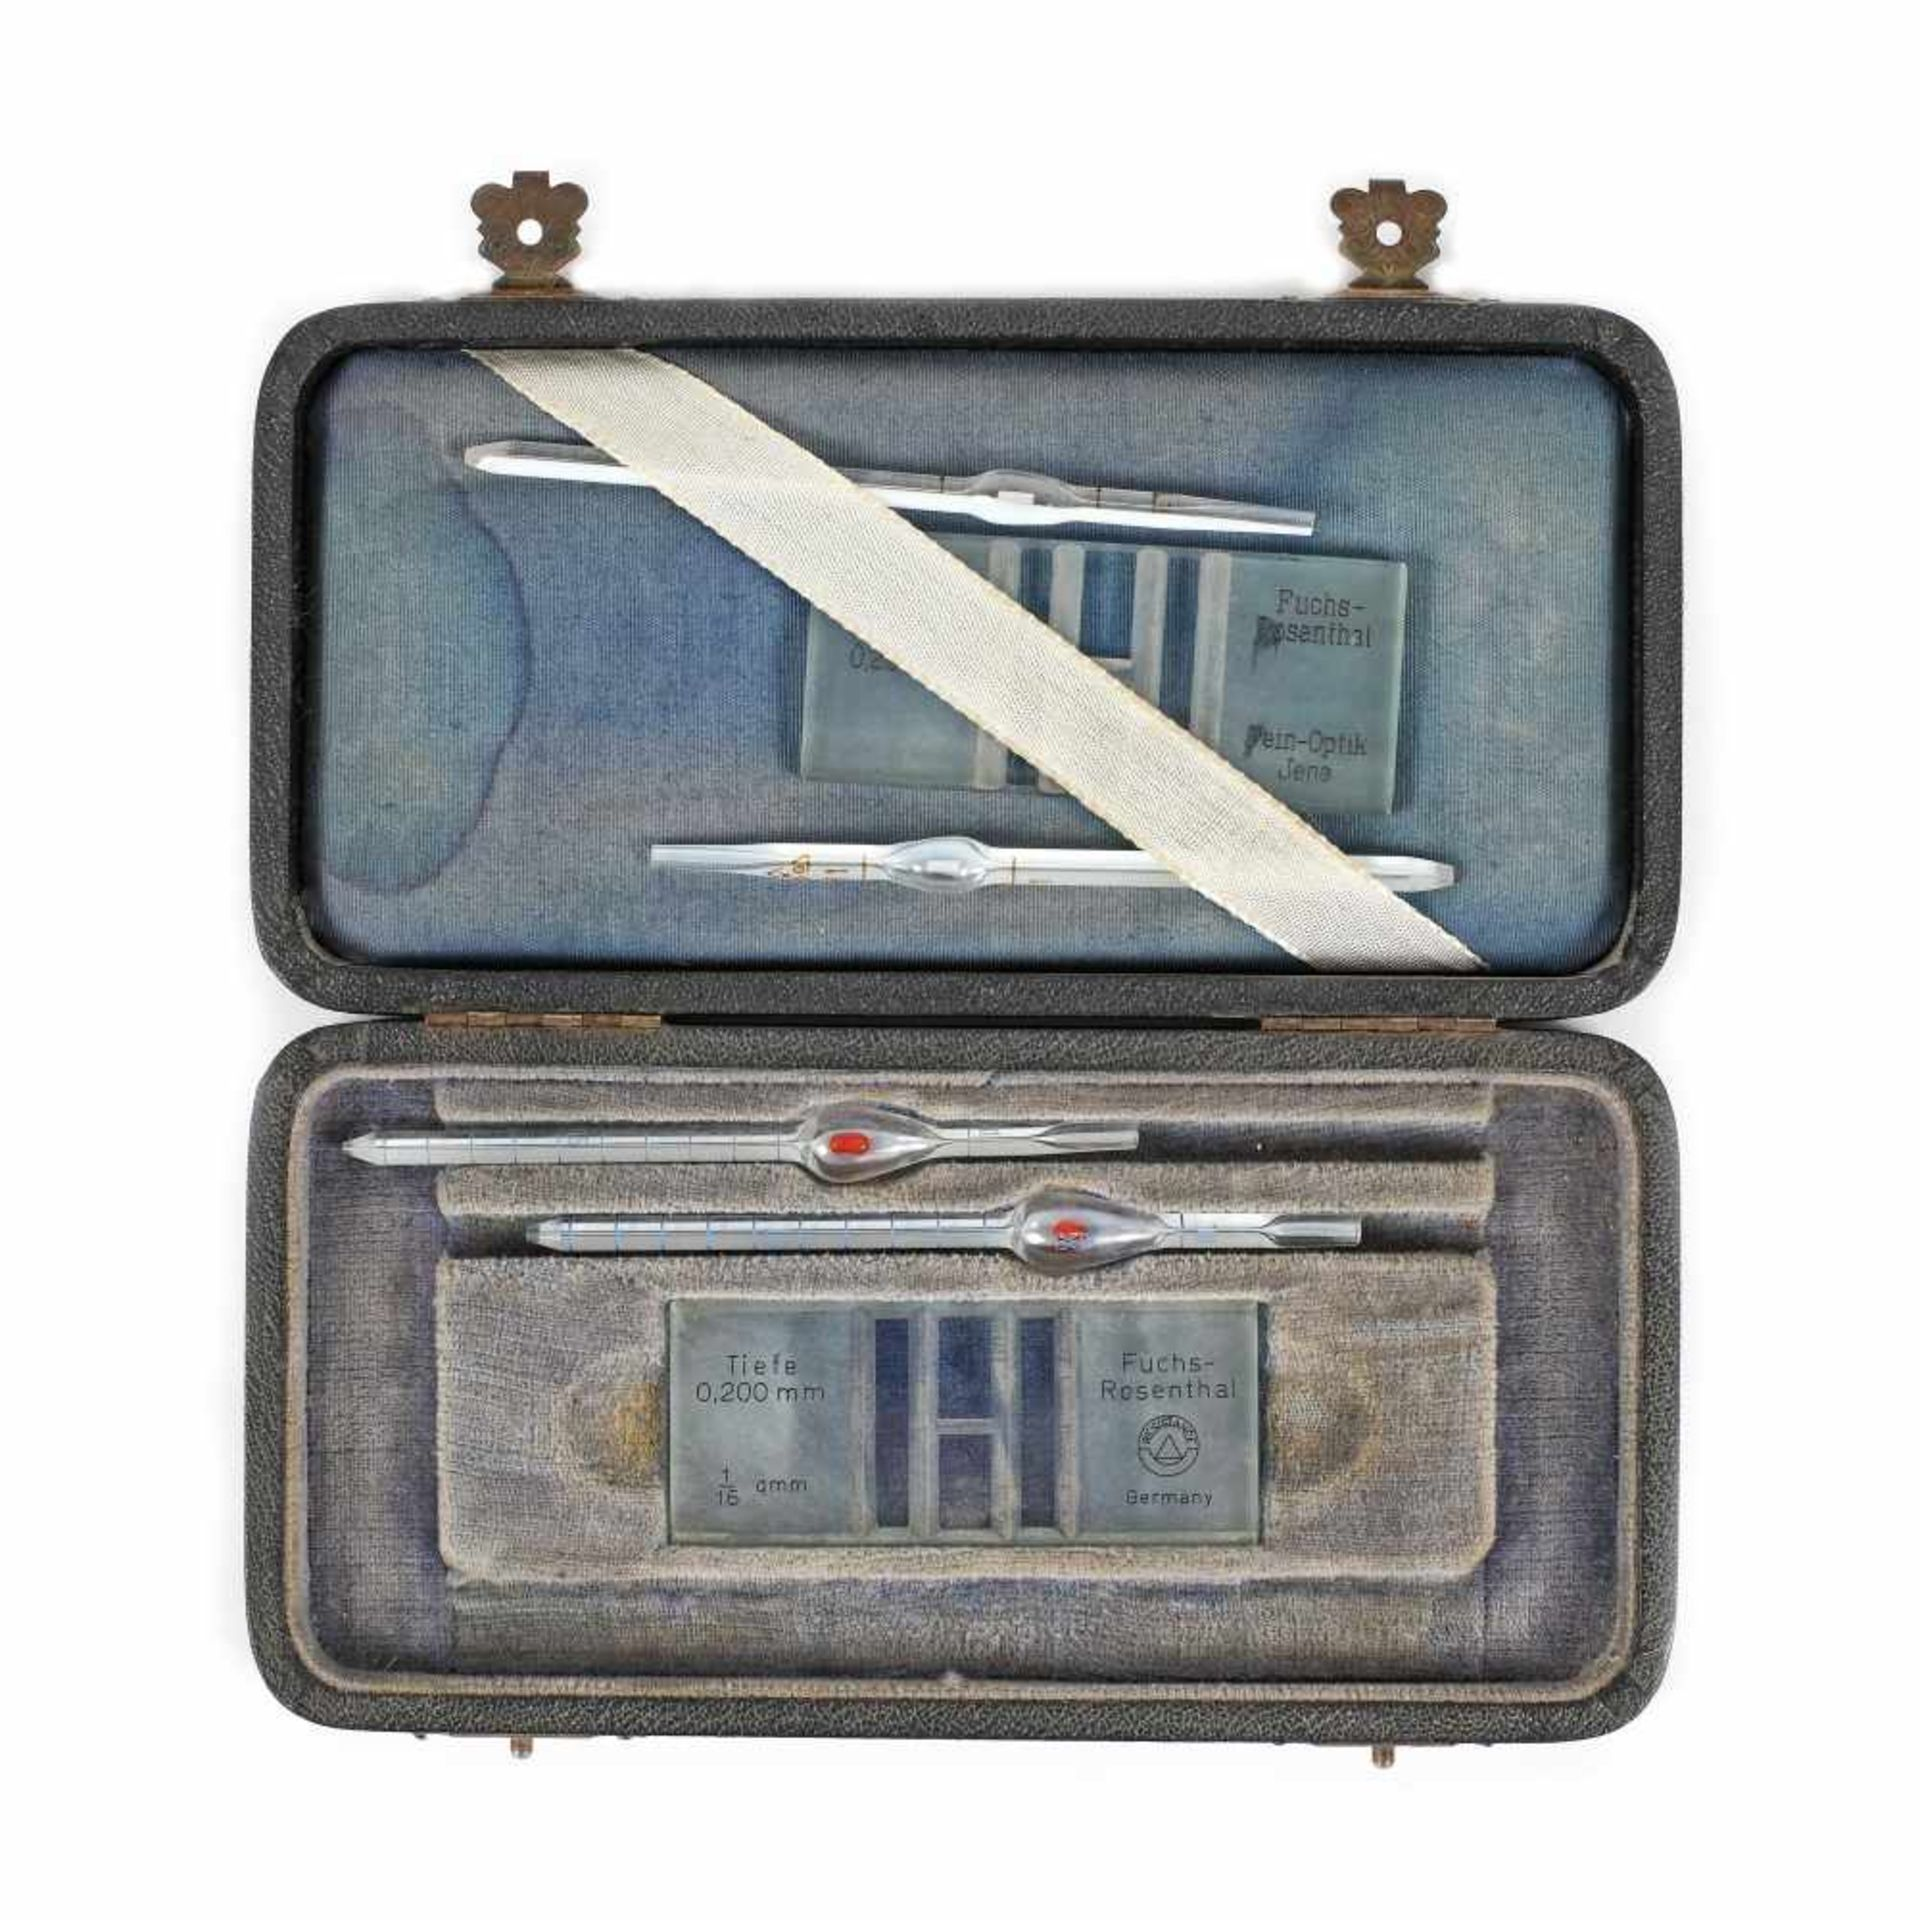 Kit for counting blood cells and measuring blood pH, Germany, middle 20th century